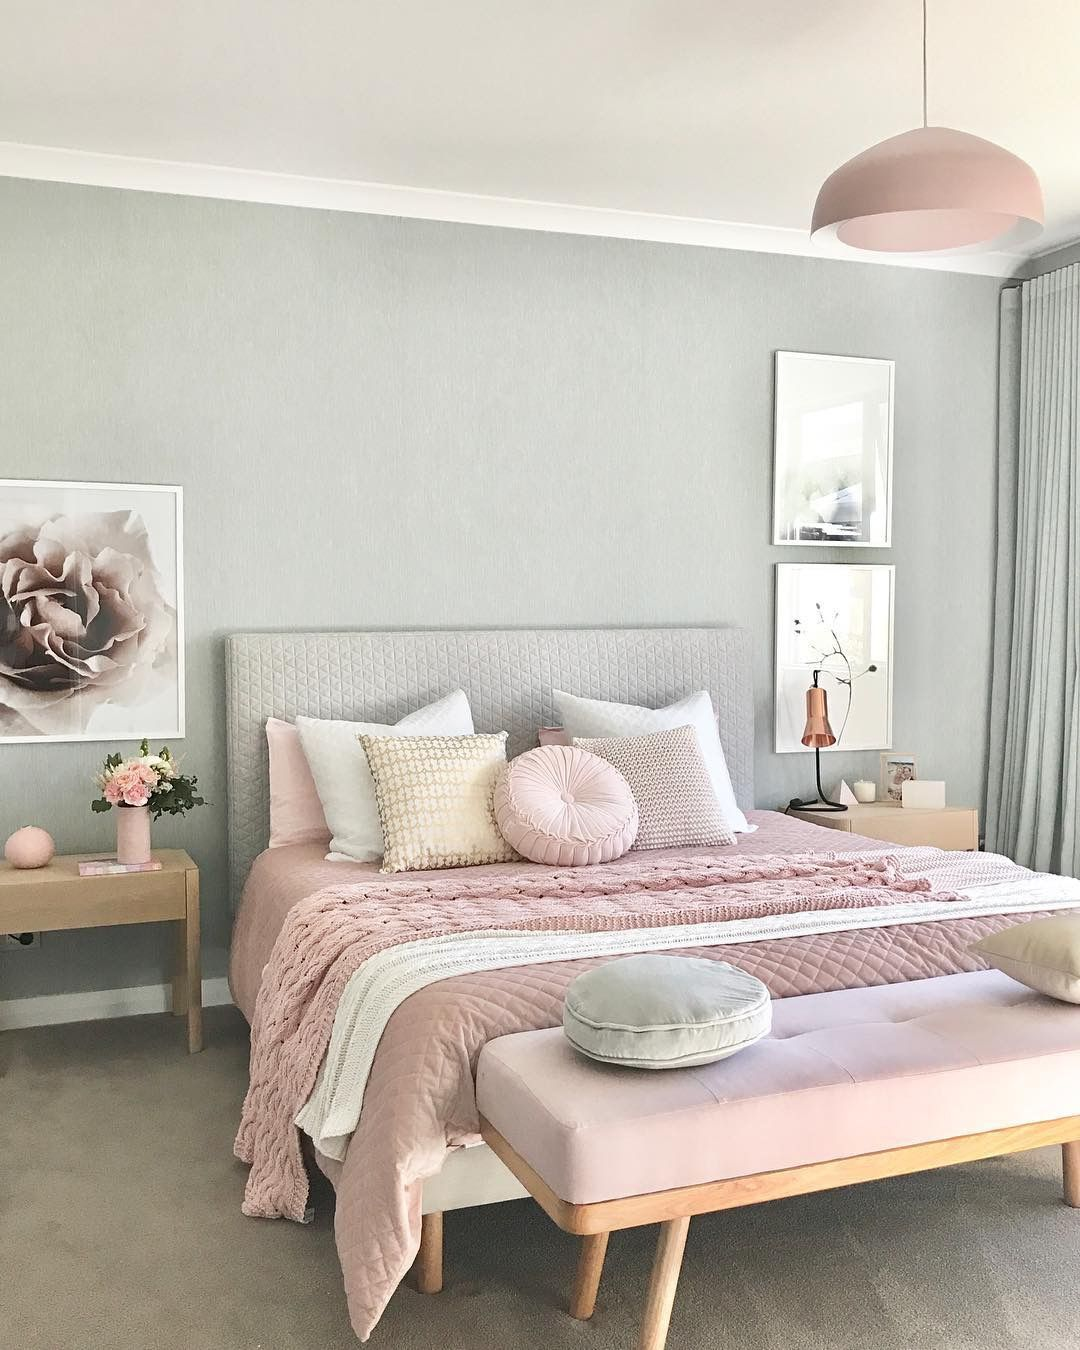 Pastel Colors Kids Room: Pastel Color Palette